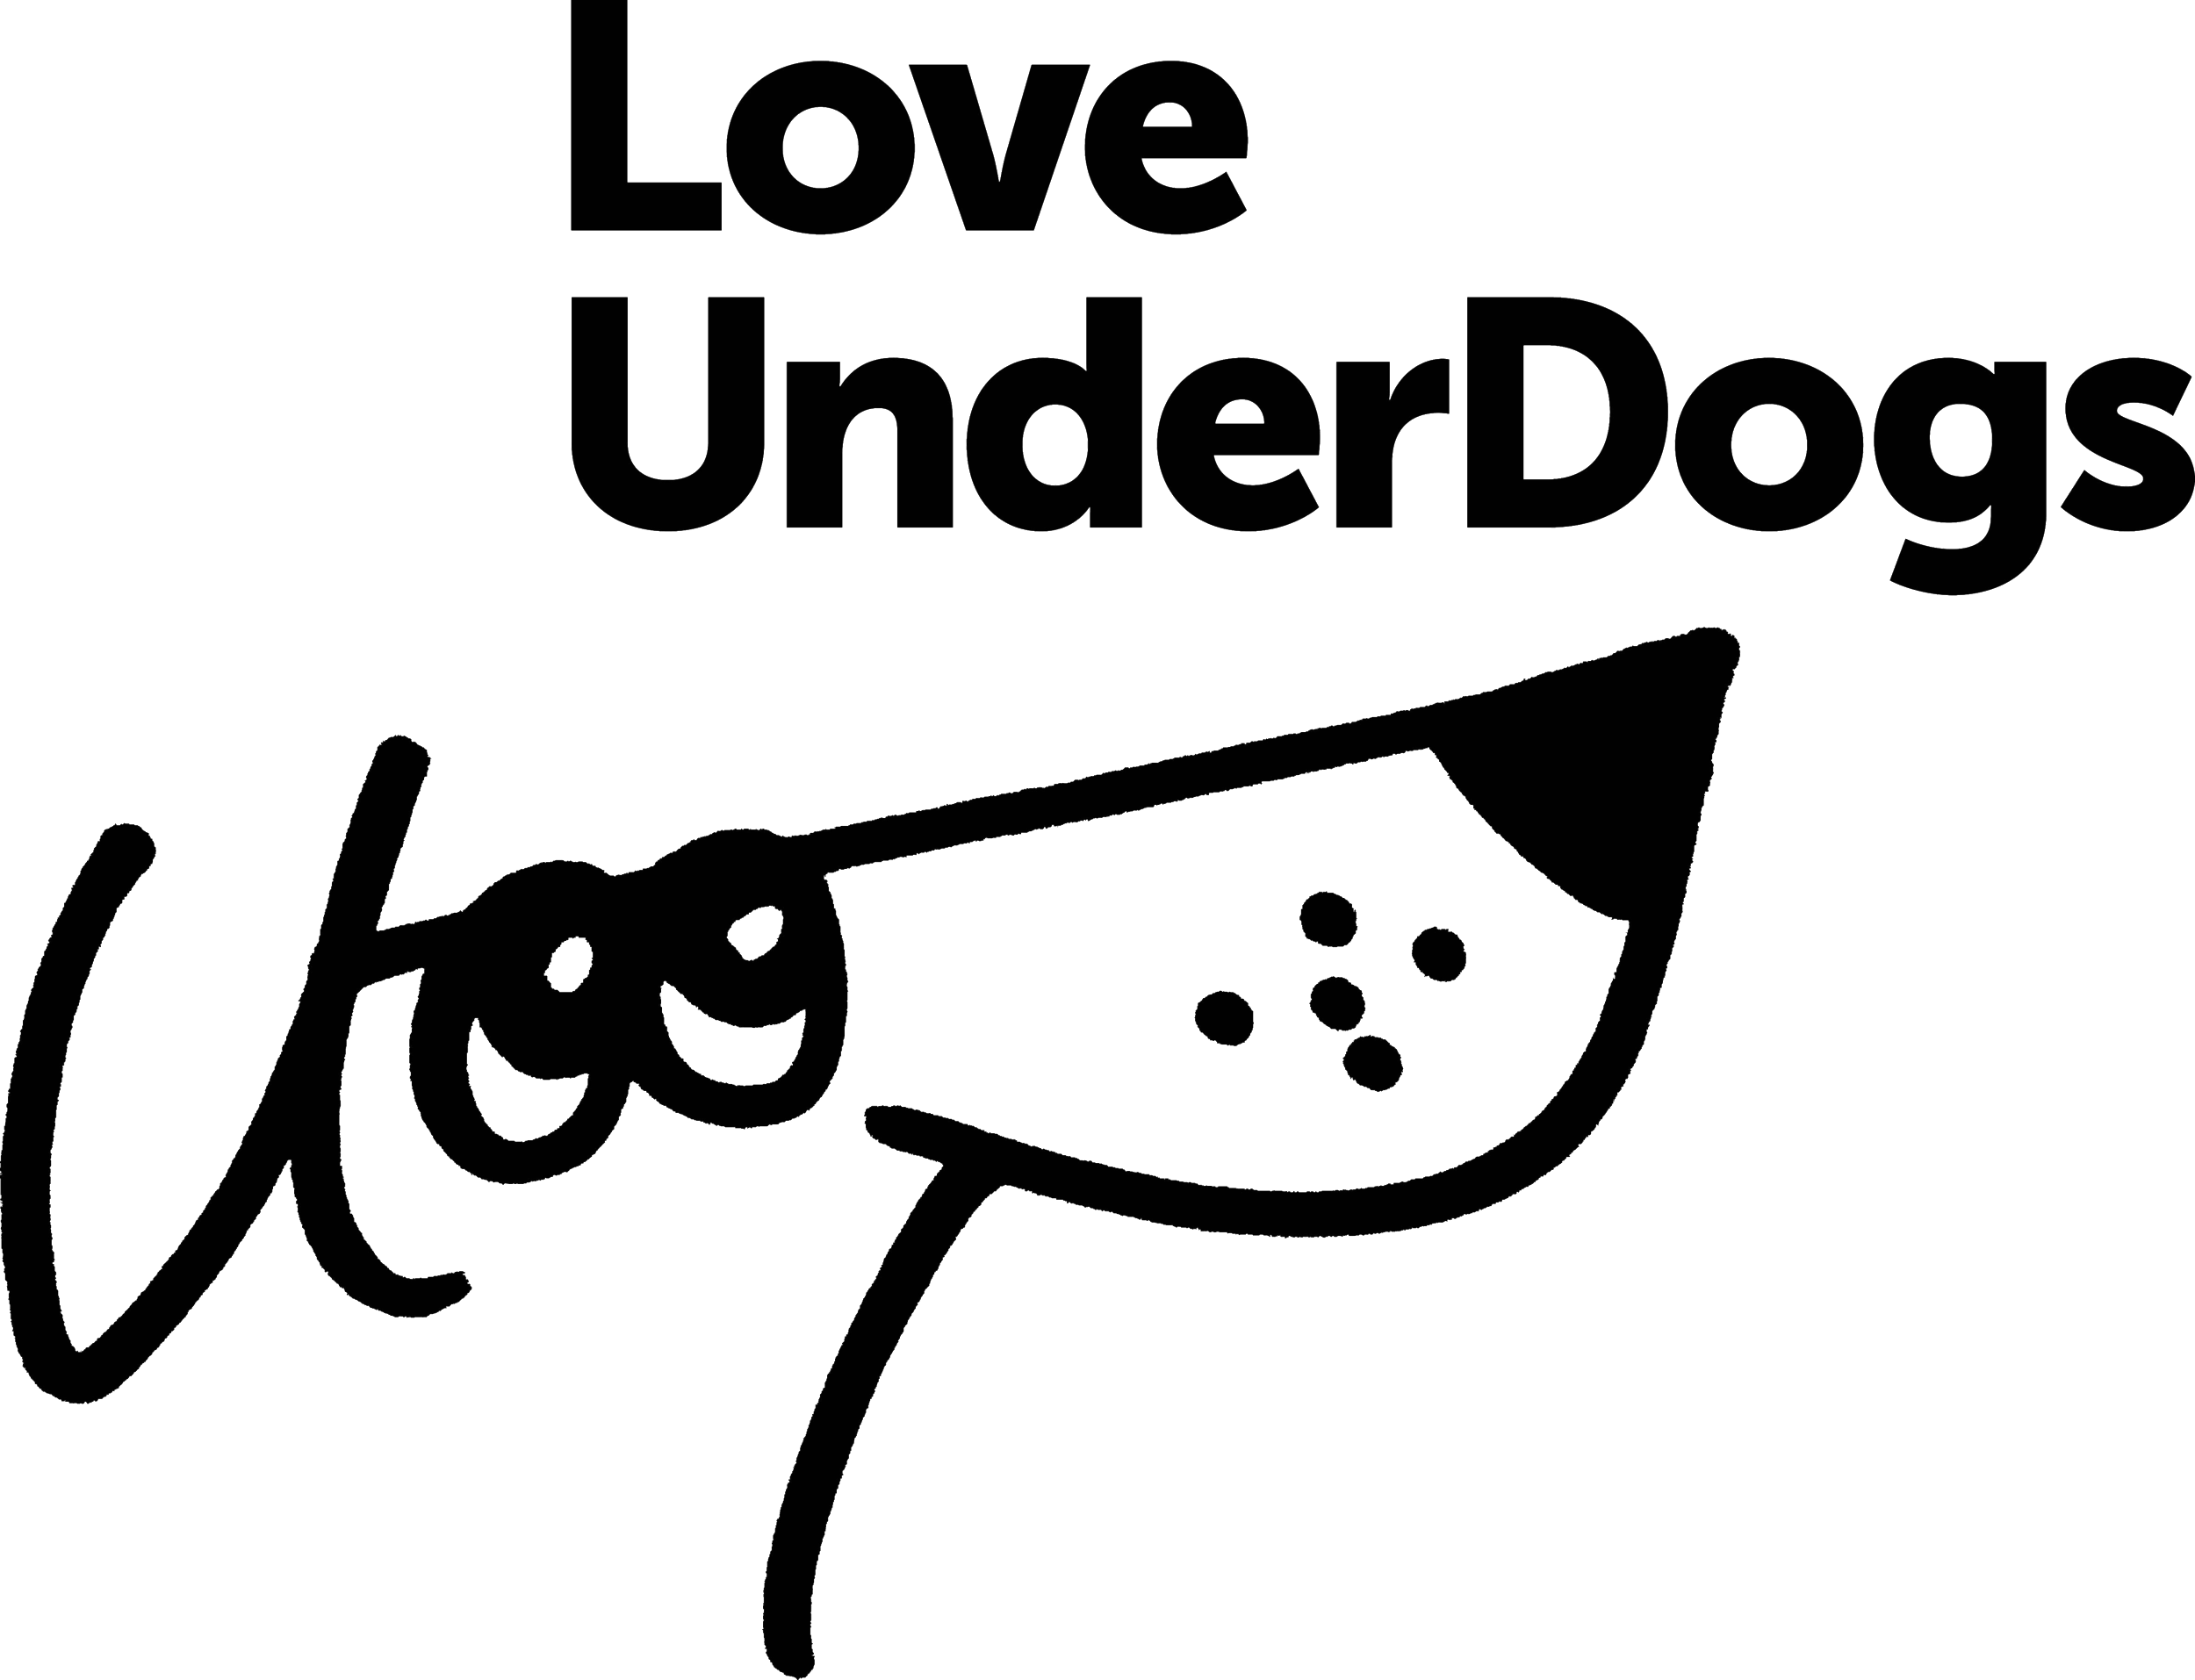 Love Underdogs logo